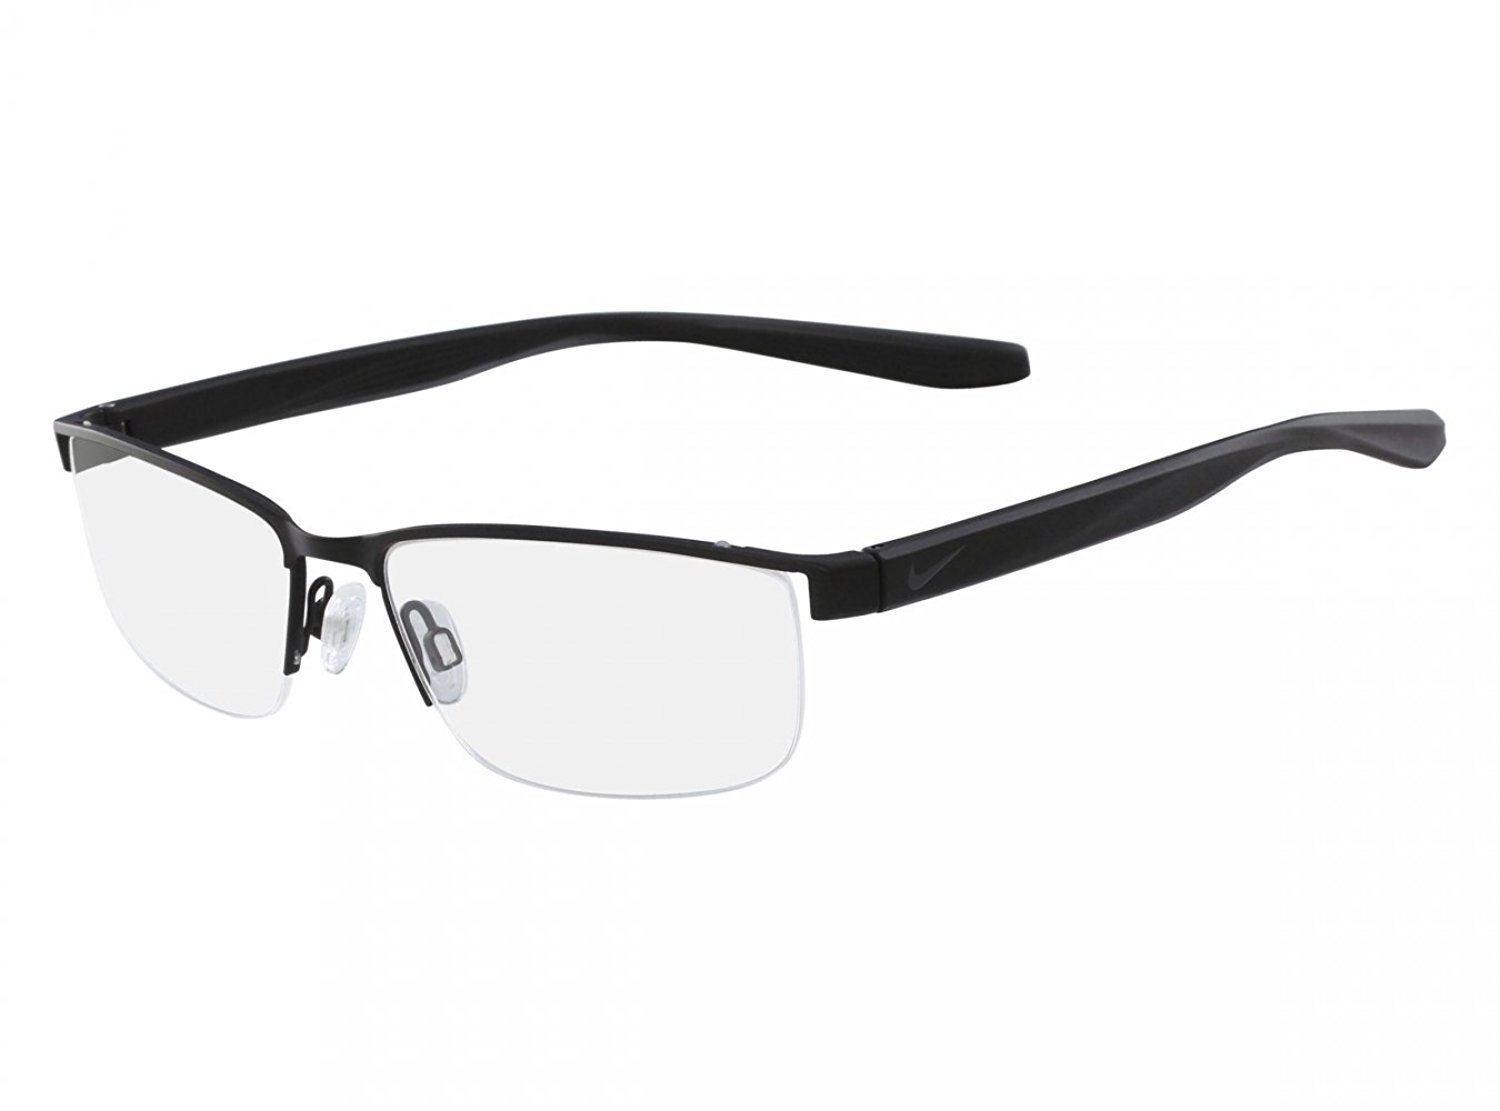 Eyeglasses NIKE 8172 001 SATIN BLACK